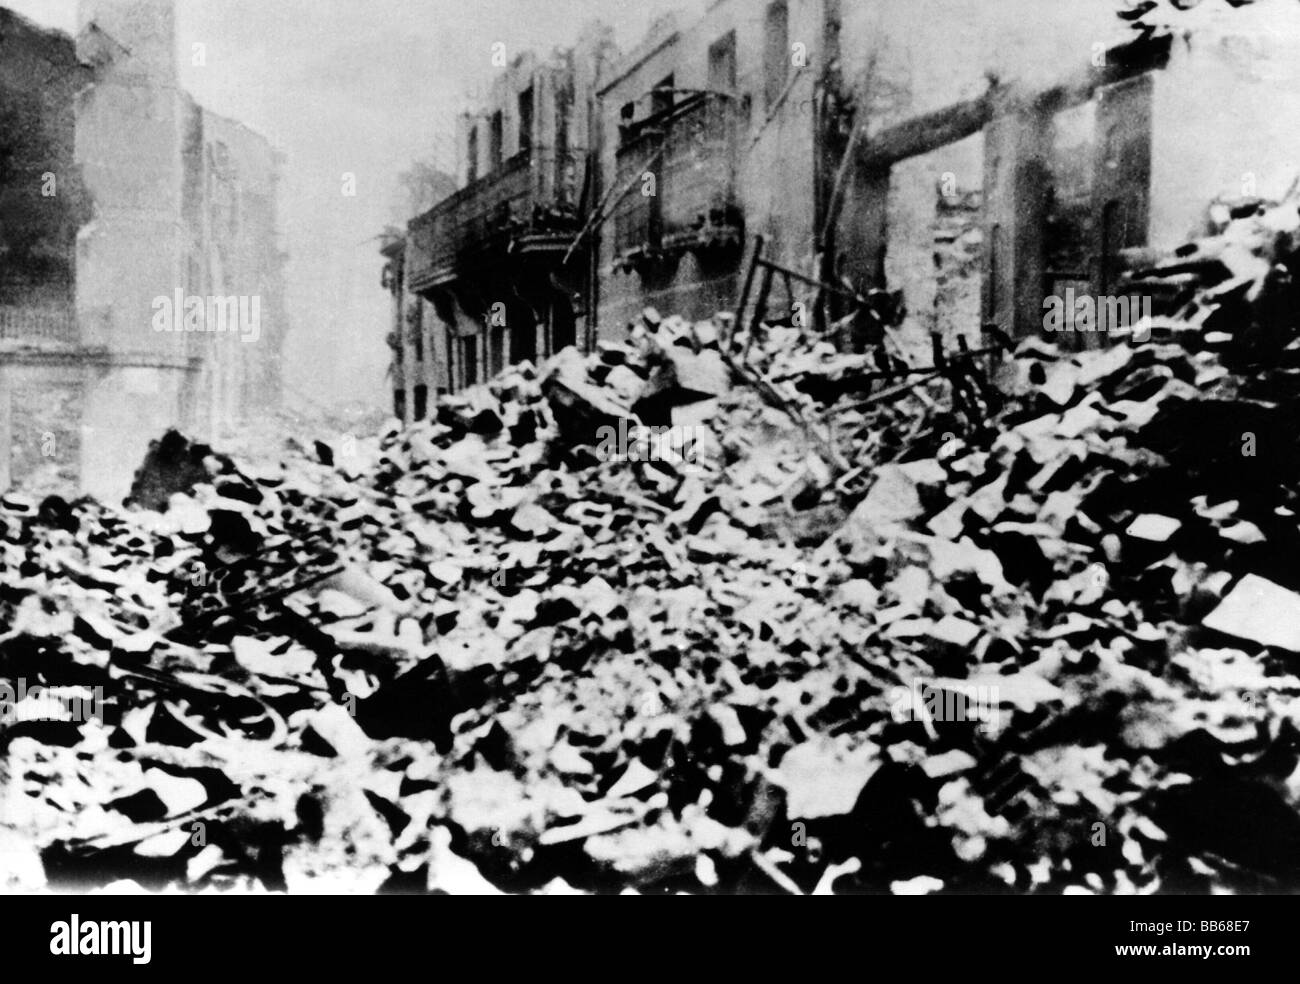 geography / travel, Spain, Spanish Civil War 1936 - 1939, destroyed town of Guernica y Lomo, after air attack of - Stock Image